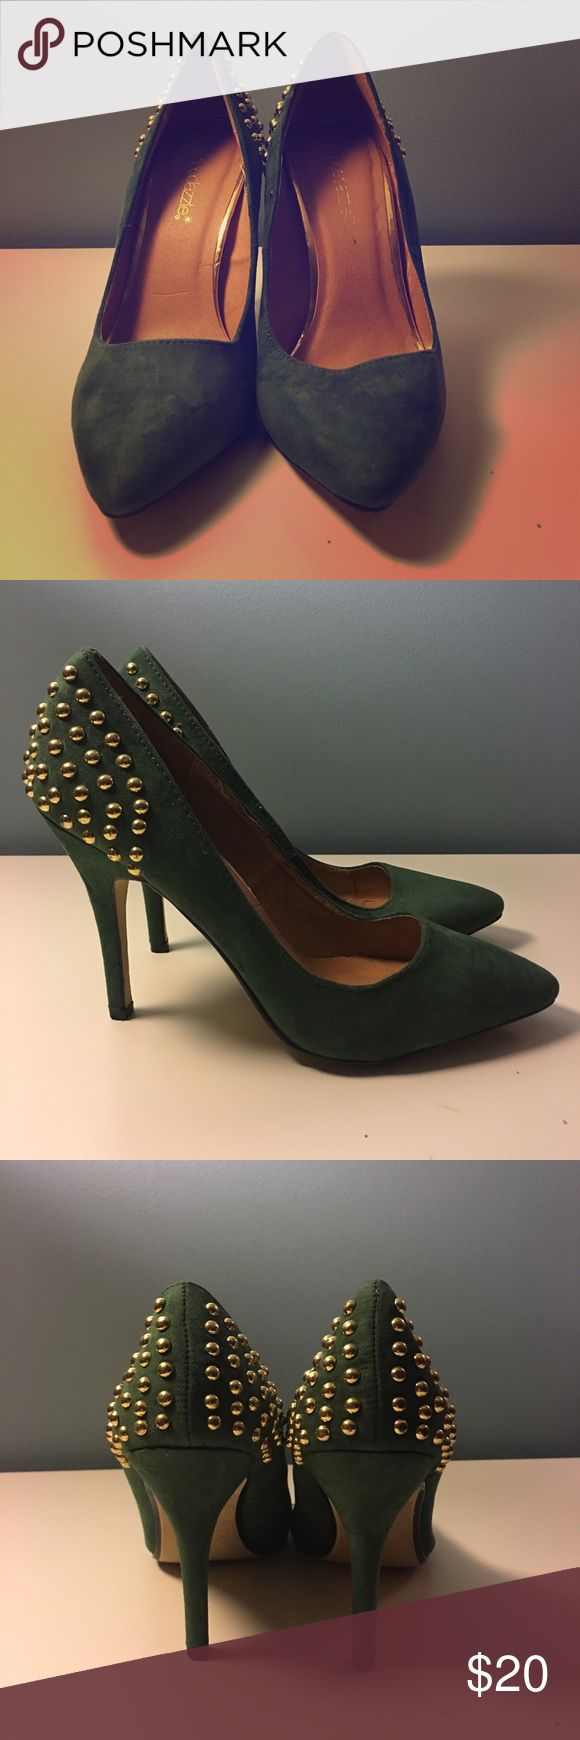 Green Shoedazzle heels Green gold studded shoedazzle heels. Pre loved but in good condition. shoedazzle  Shoes Heels